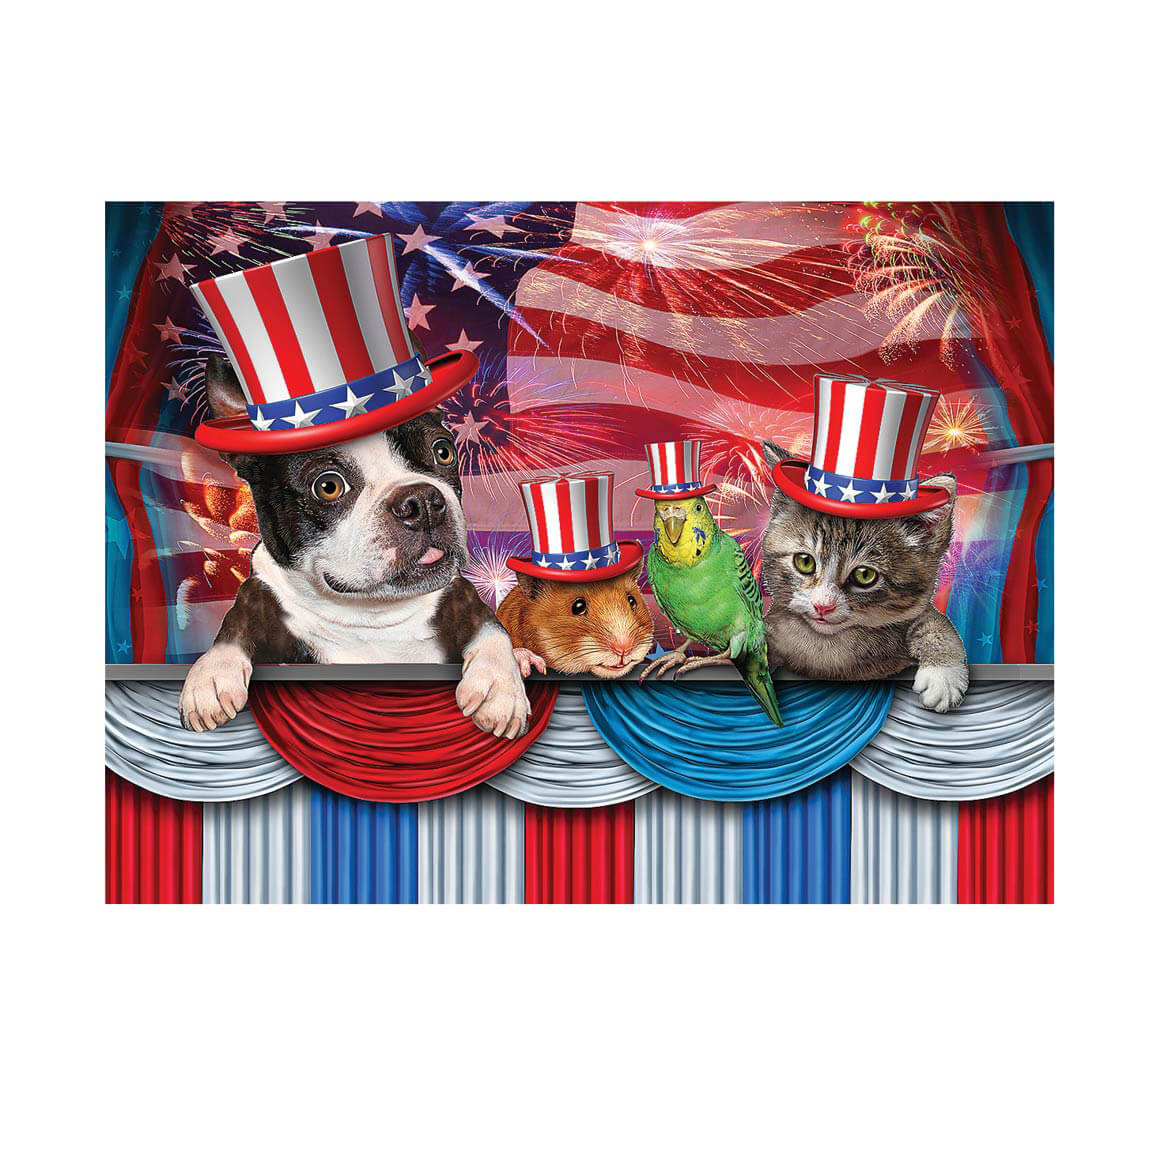 Pets Love America Puzzle 1000 Pieces